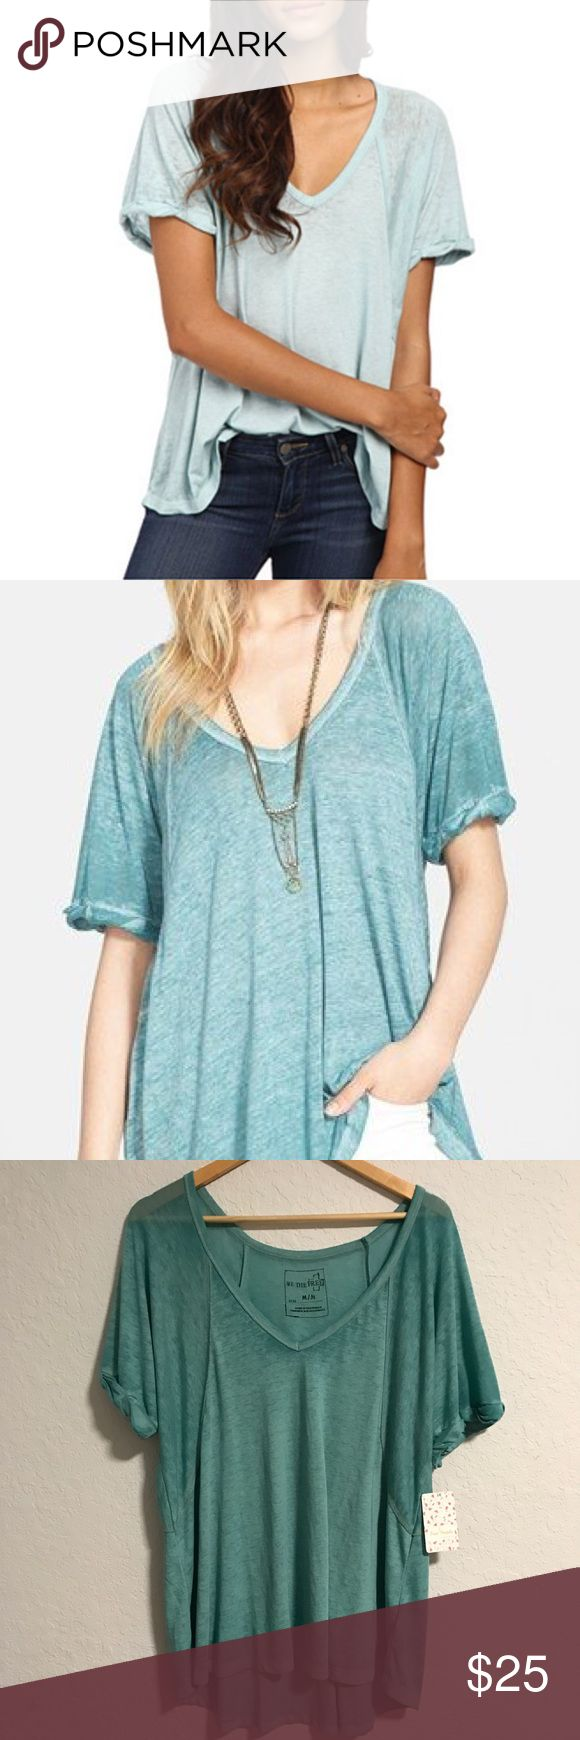 Free People Free Fallin Tee (discontinued color) New twist on an old FP fave, this tee features the same slouchy, oversized fit but it's in a so-soft burnout jersey. Ribbed V-Neck with rolled short sleeves. Subtle Hi-Lo hem. Color is called Dusty Jade. Size Medium.  We The Free  FP EXCLUSIVE :Only sold thru Free People. One of nine exclusive, in-house labels. Perfectly distressed, all-American styles.  50% Polyester 38% Cotton 12% Rayon Machine Wash Cold Free People Tops Tees - Short Sleeve